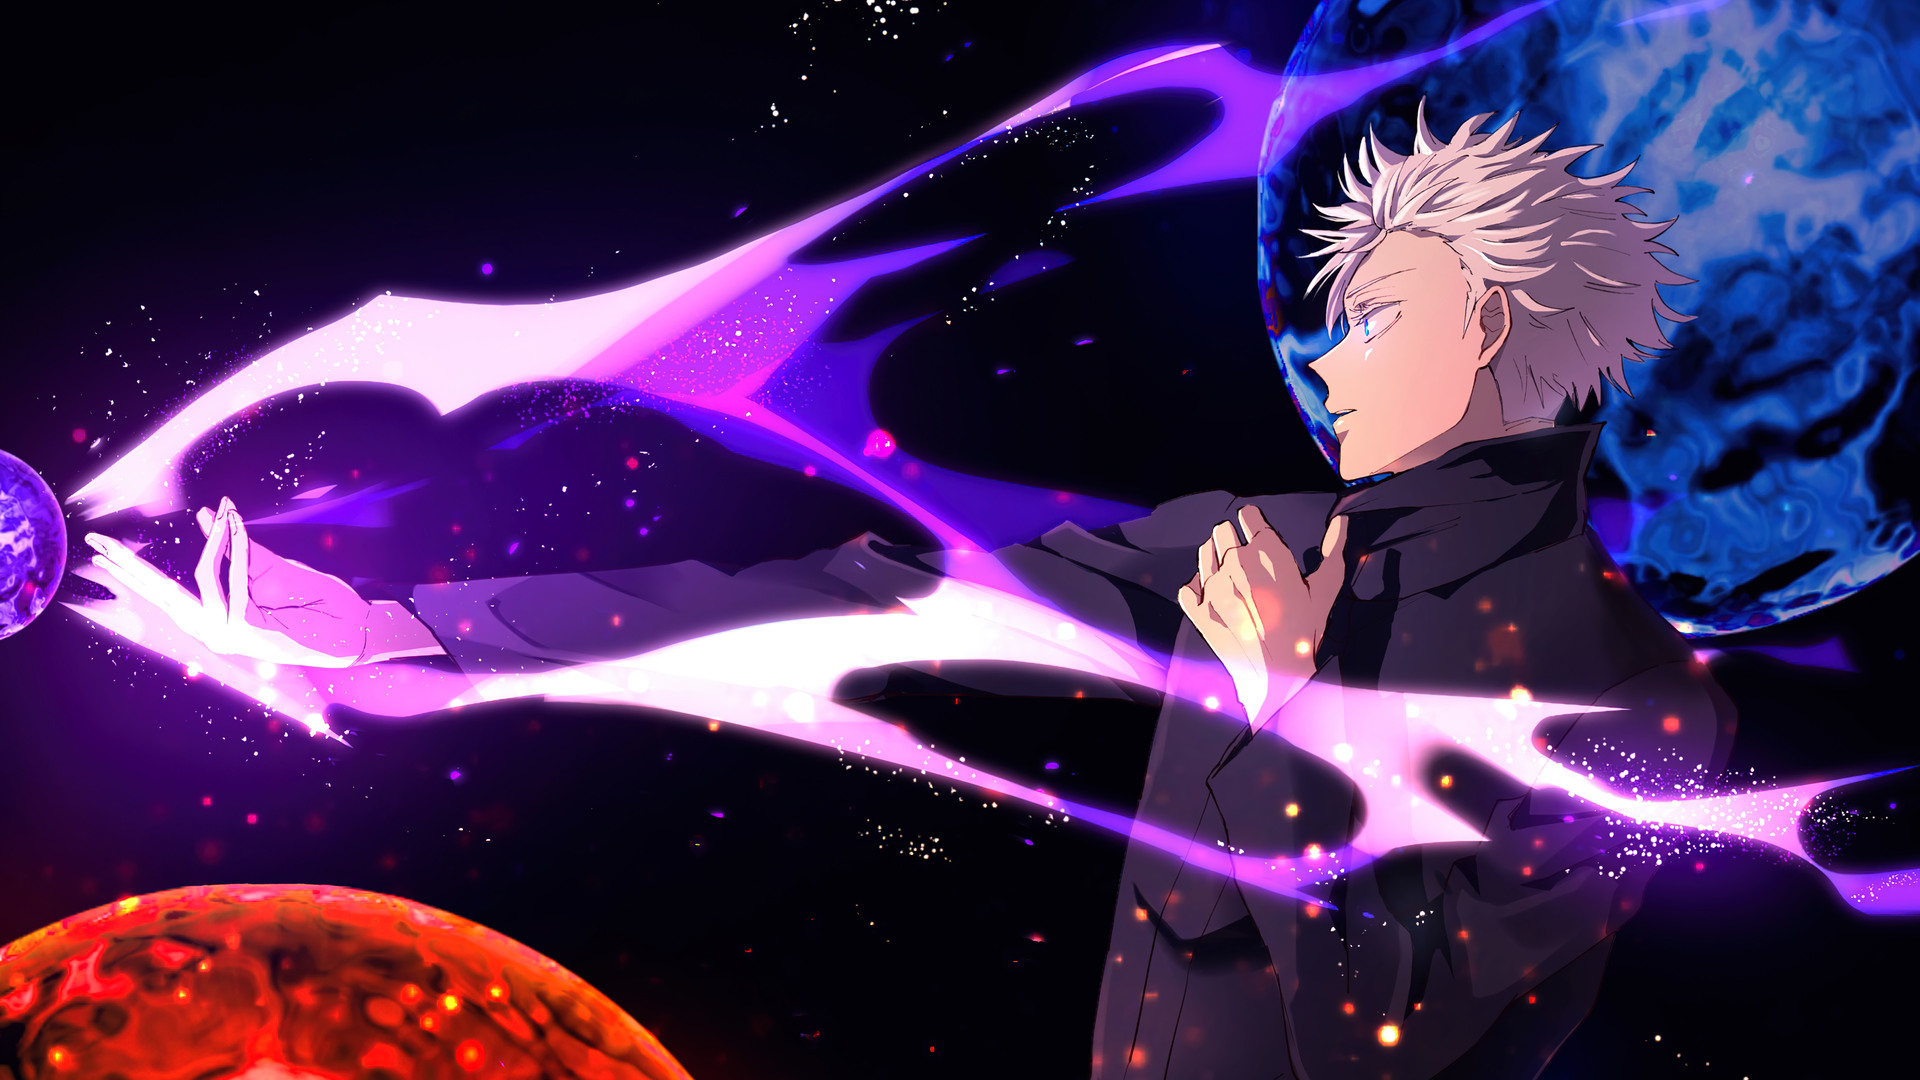 Live wallpaper multiple categories wallpaper for your phone like nature, anime, kpop idol, abstract,. Jujutsu Kaisen Wallpaper Gojo - Jujutsu Kaisen Wallpaper ...